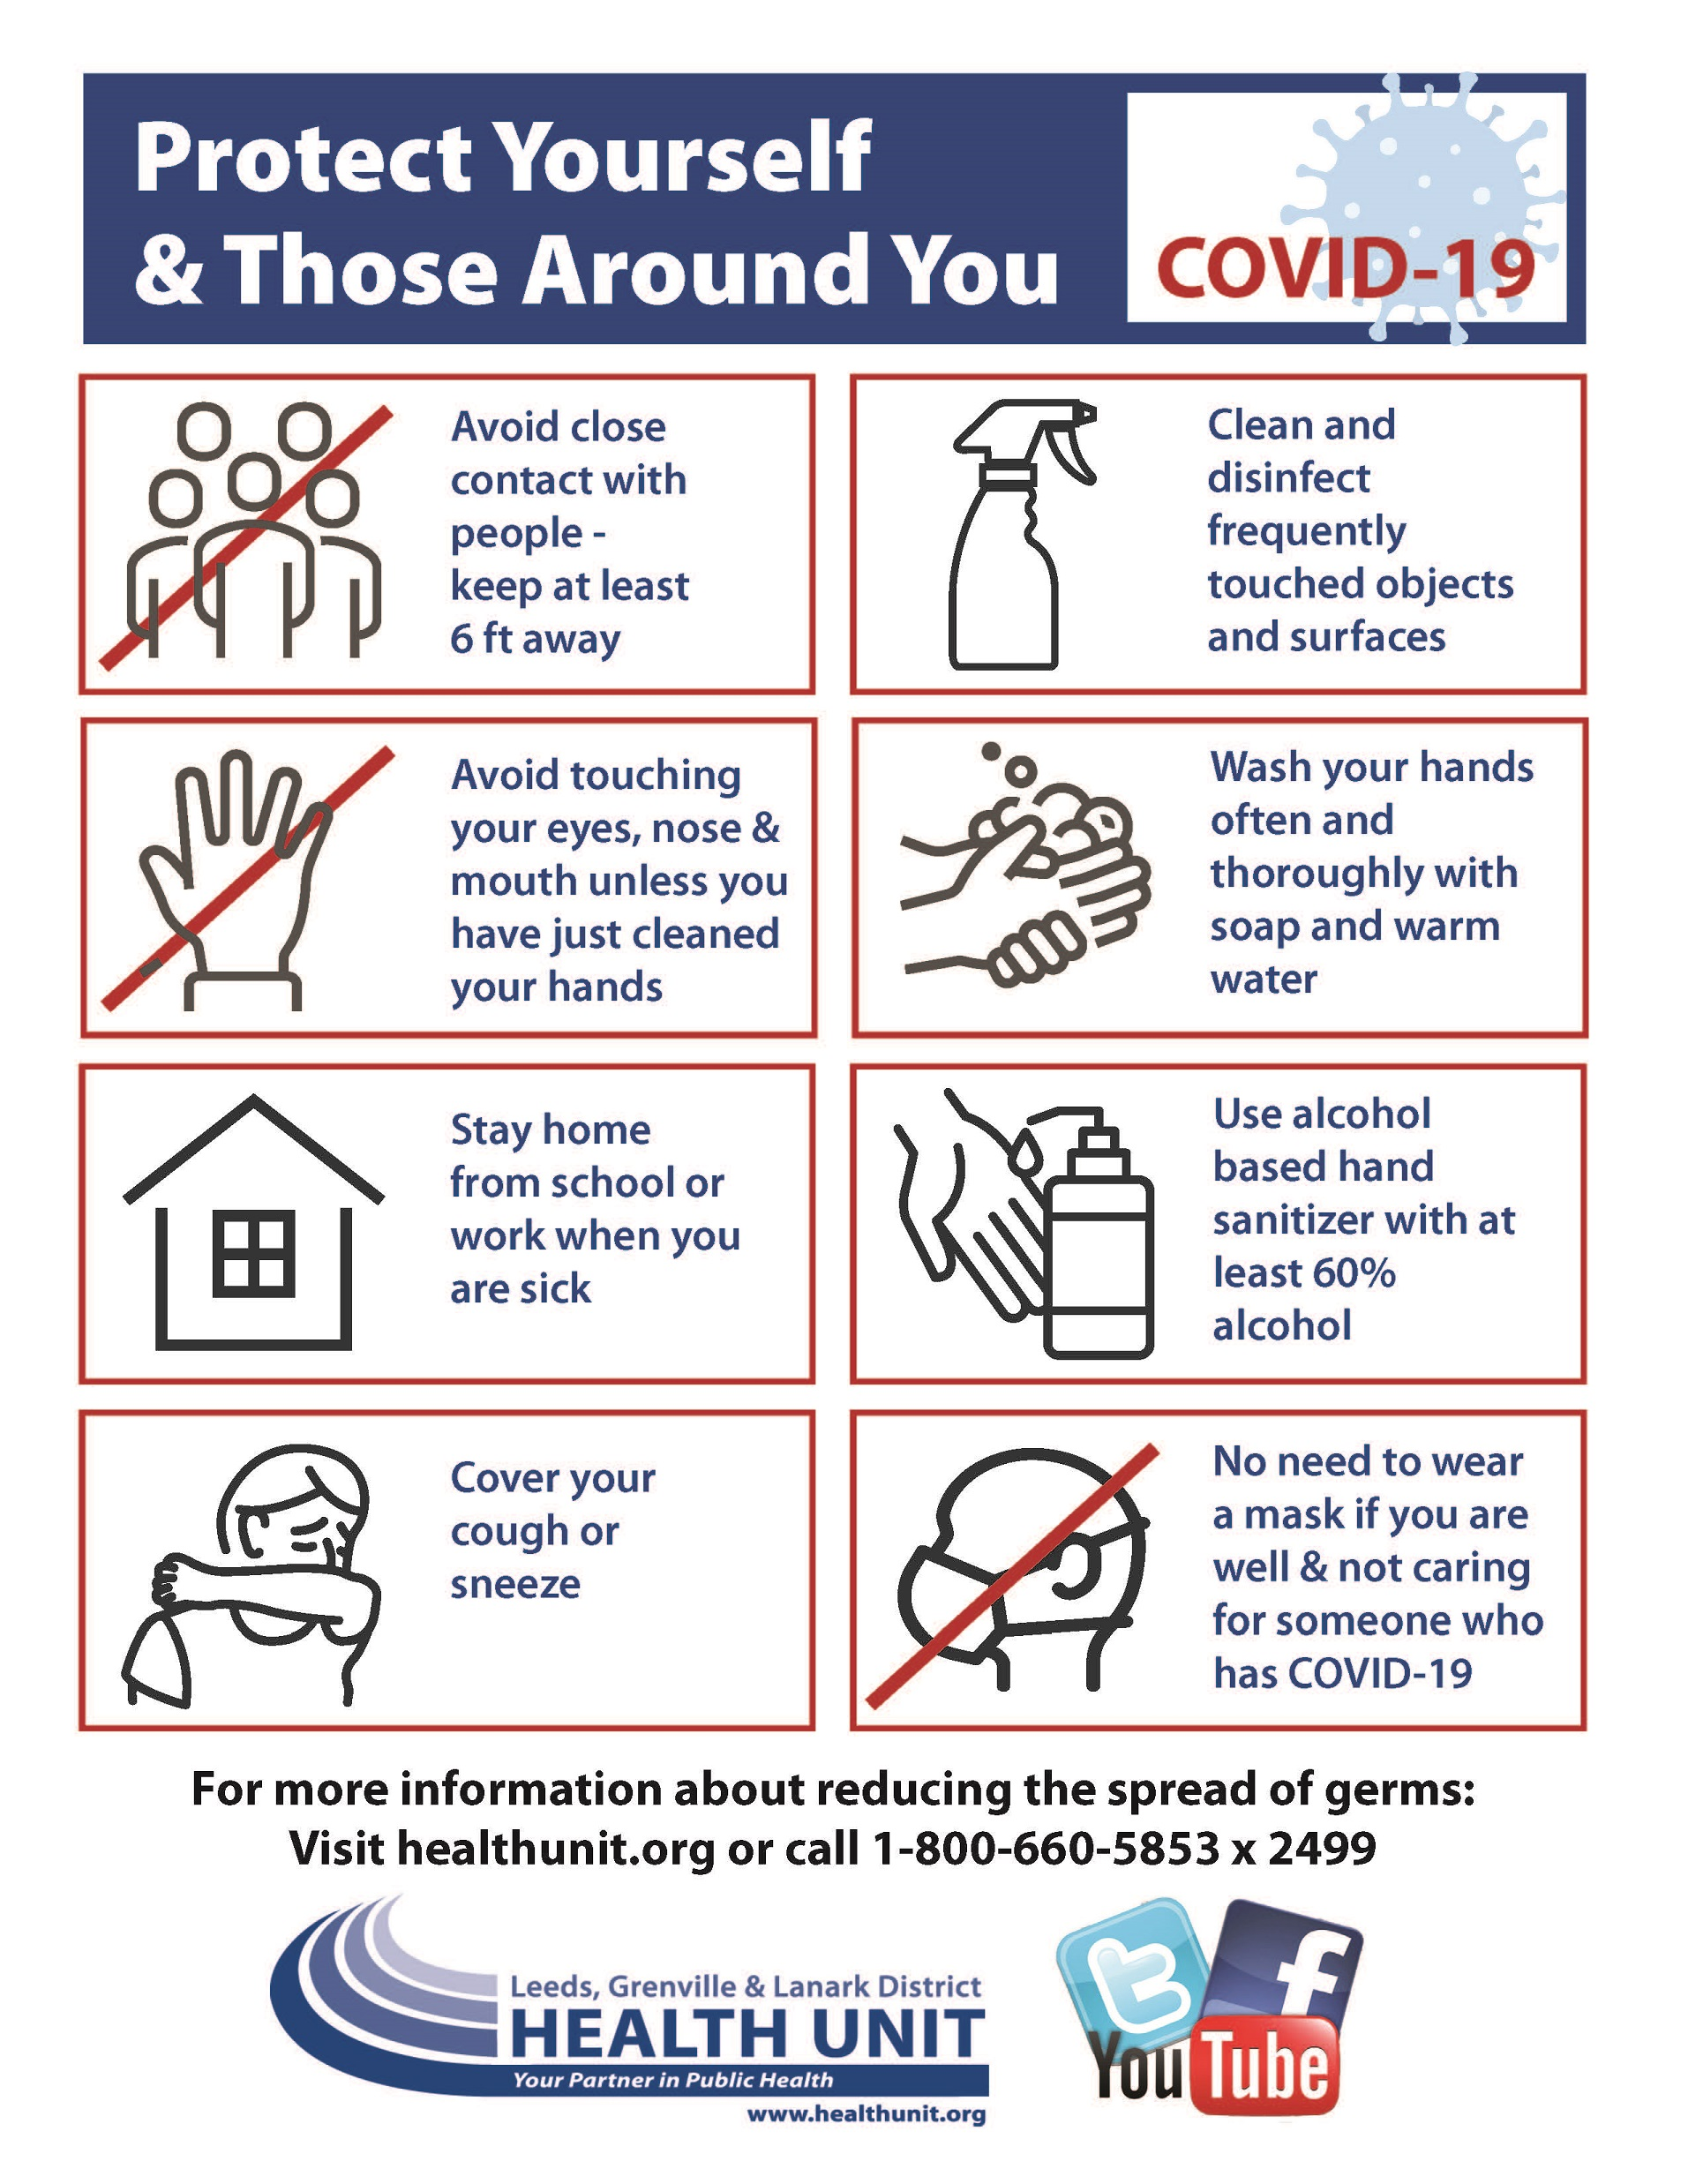 poster outlining the different steps you can take to protect yourself against COVID-19